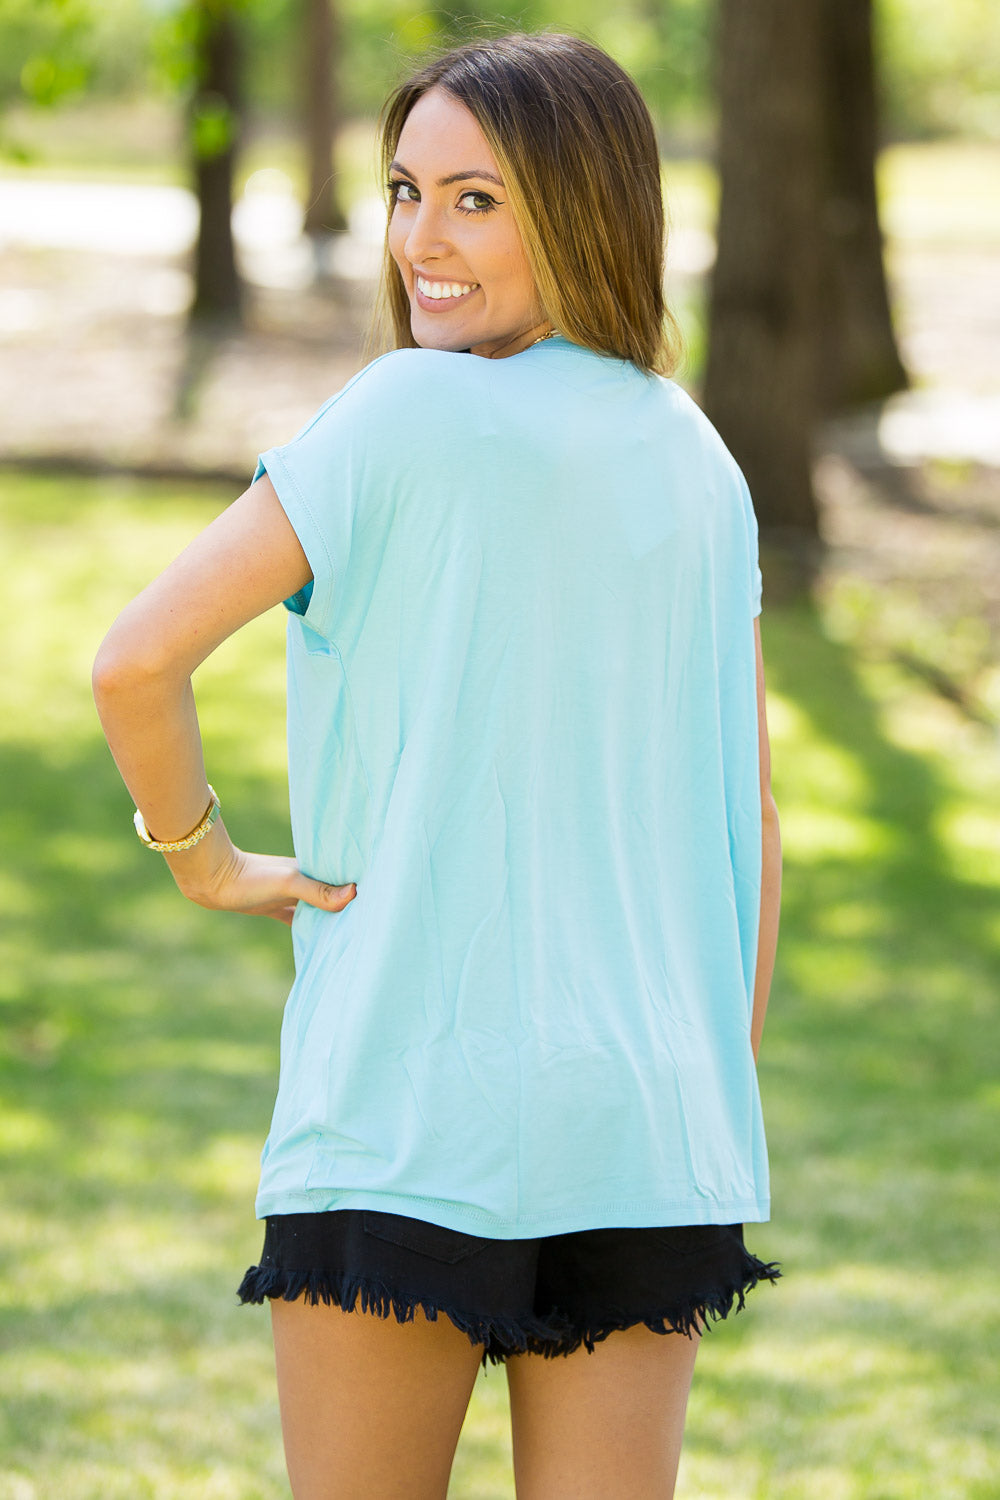 Short Sleeve Rolled Sleeve Piko Top - Limpet Shell